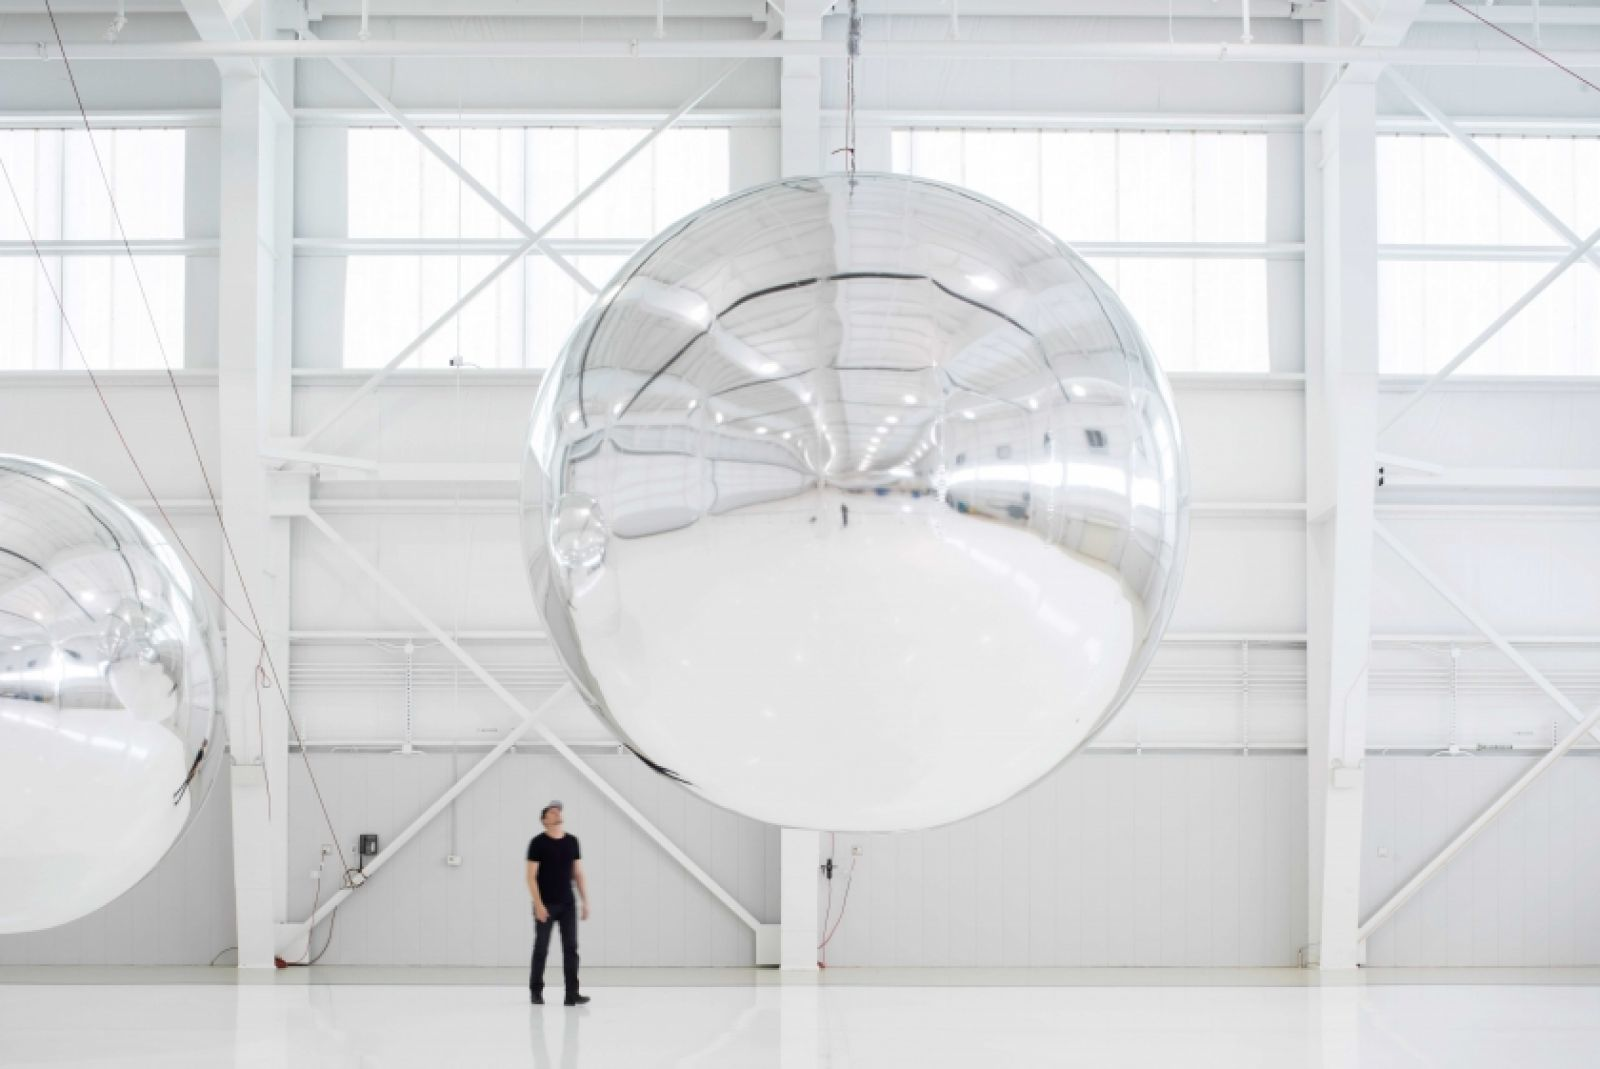 Paglen with his Prototype for a Nonfunctional Satellite (Design 4; Build 4), 2013, image © Altman Siegel Gallery and Metro Pictures